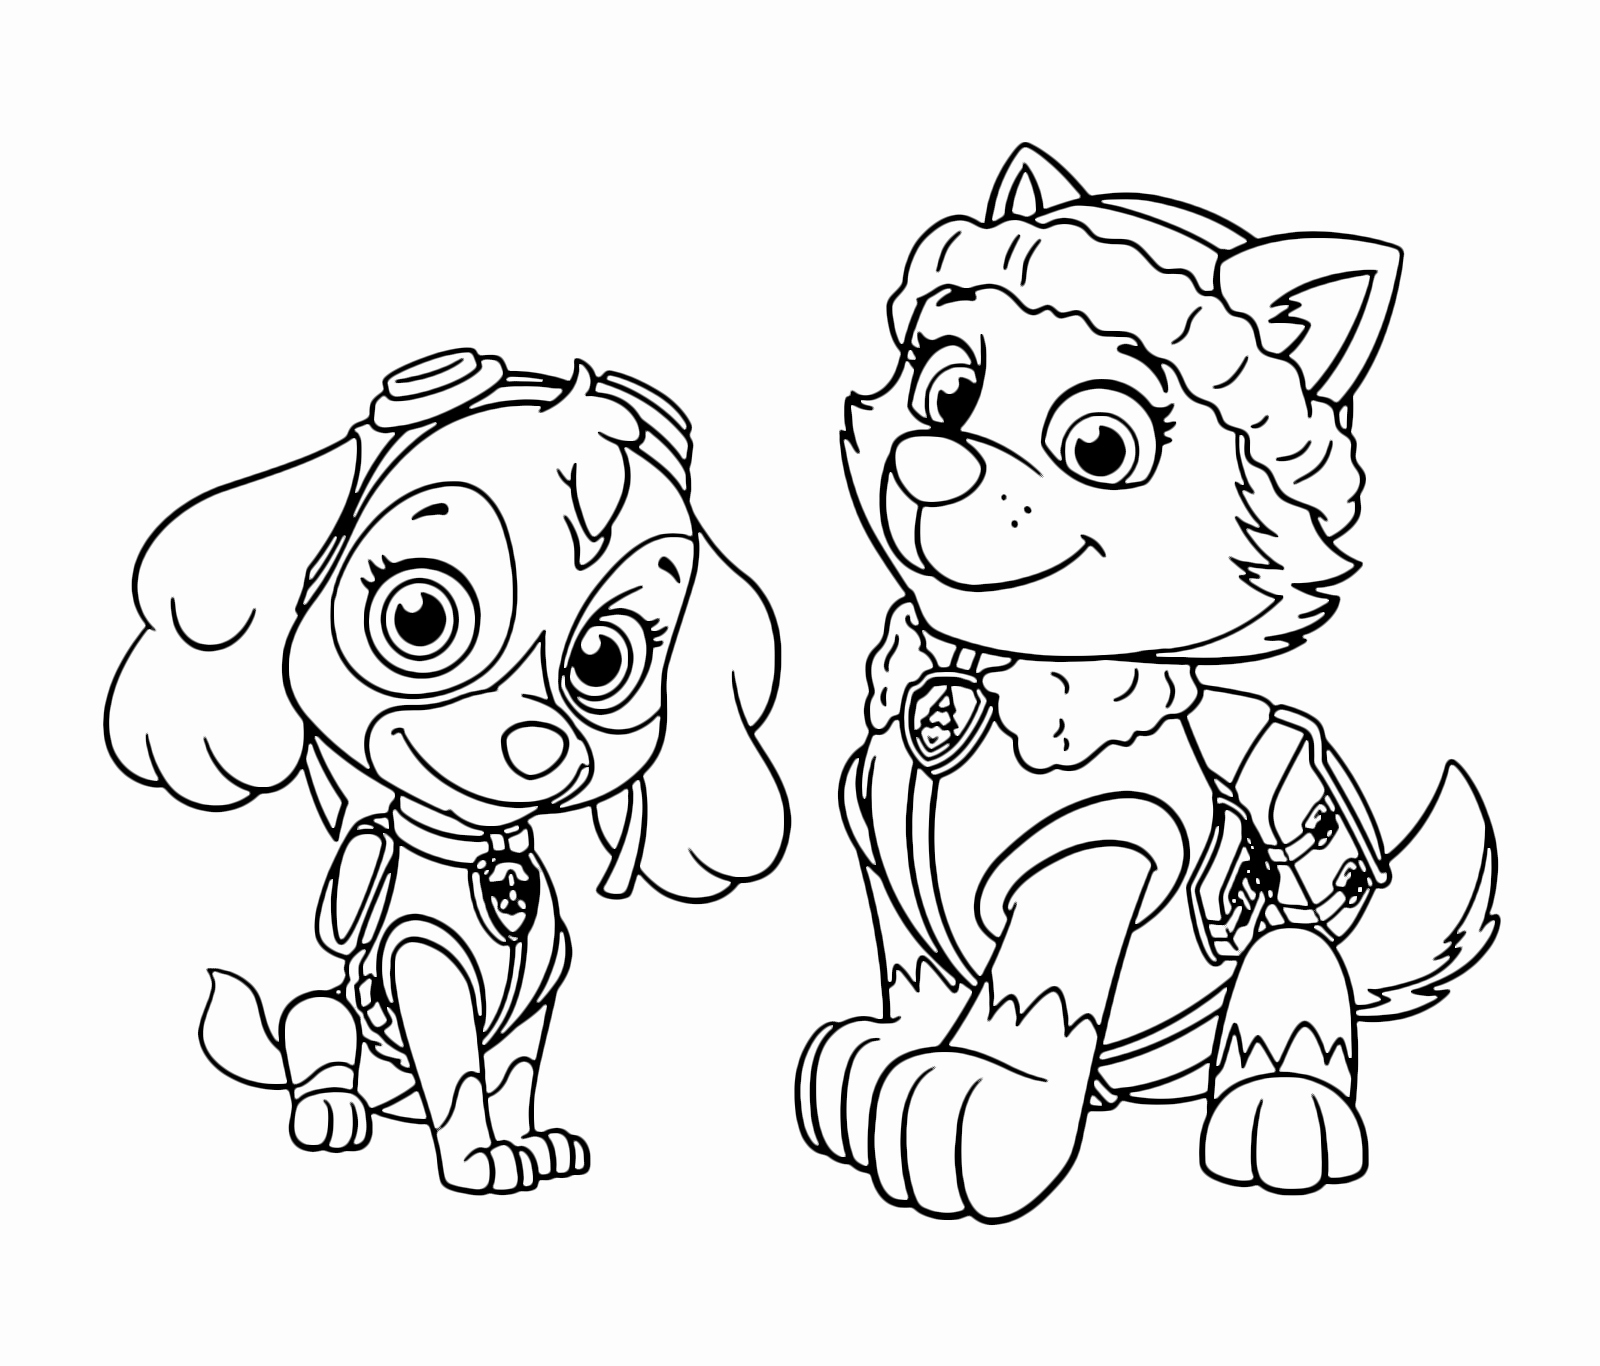 Paw Patrol Skye Coloring Pages - Coloring Home